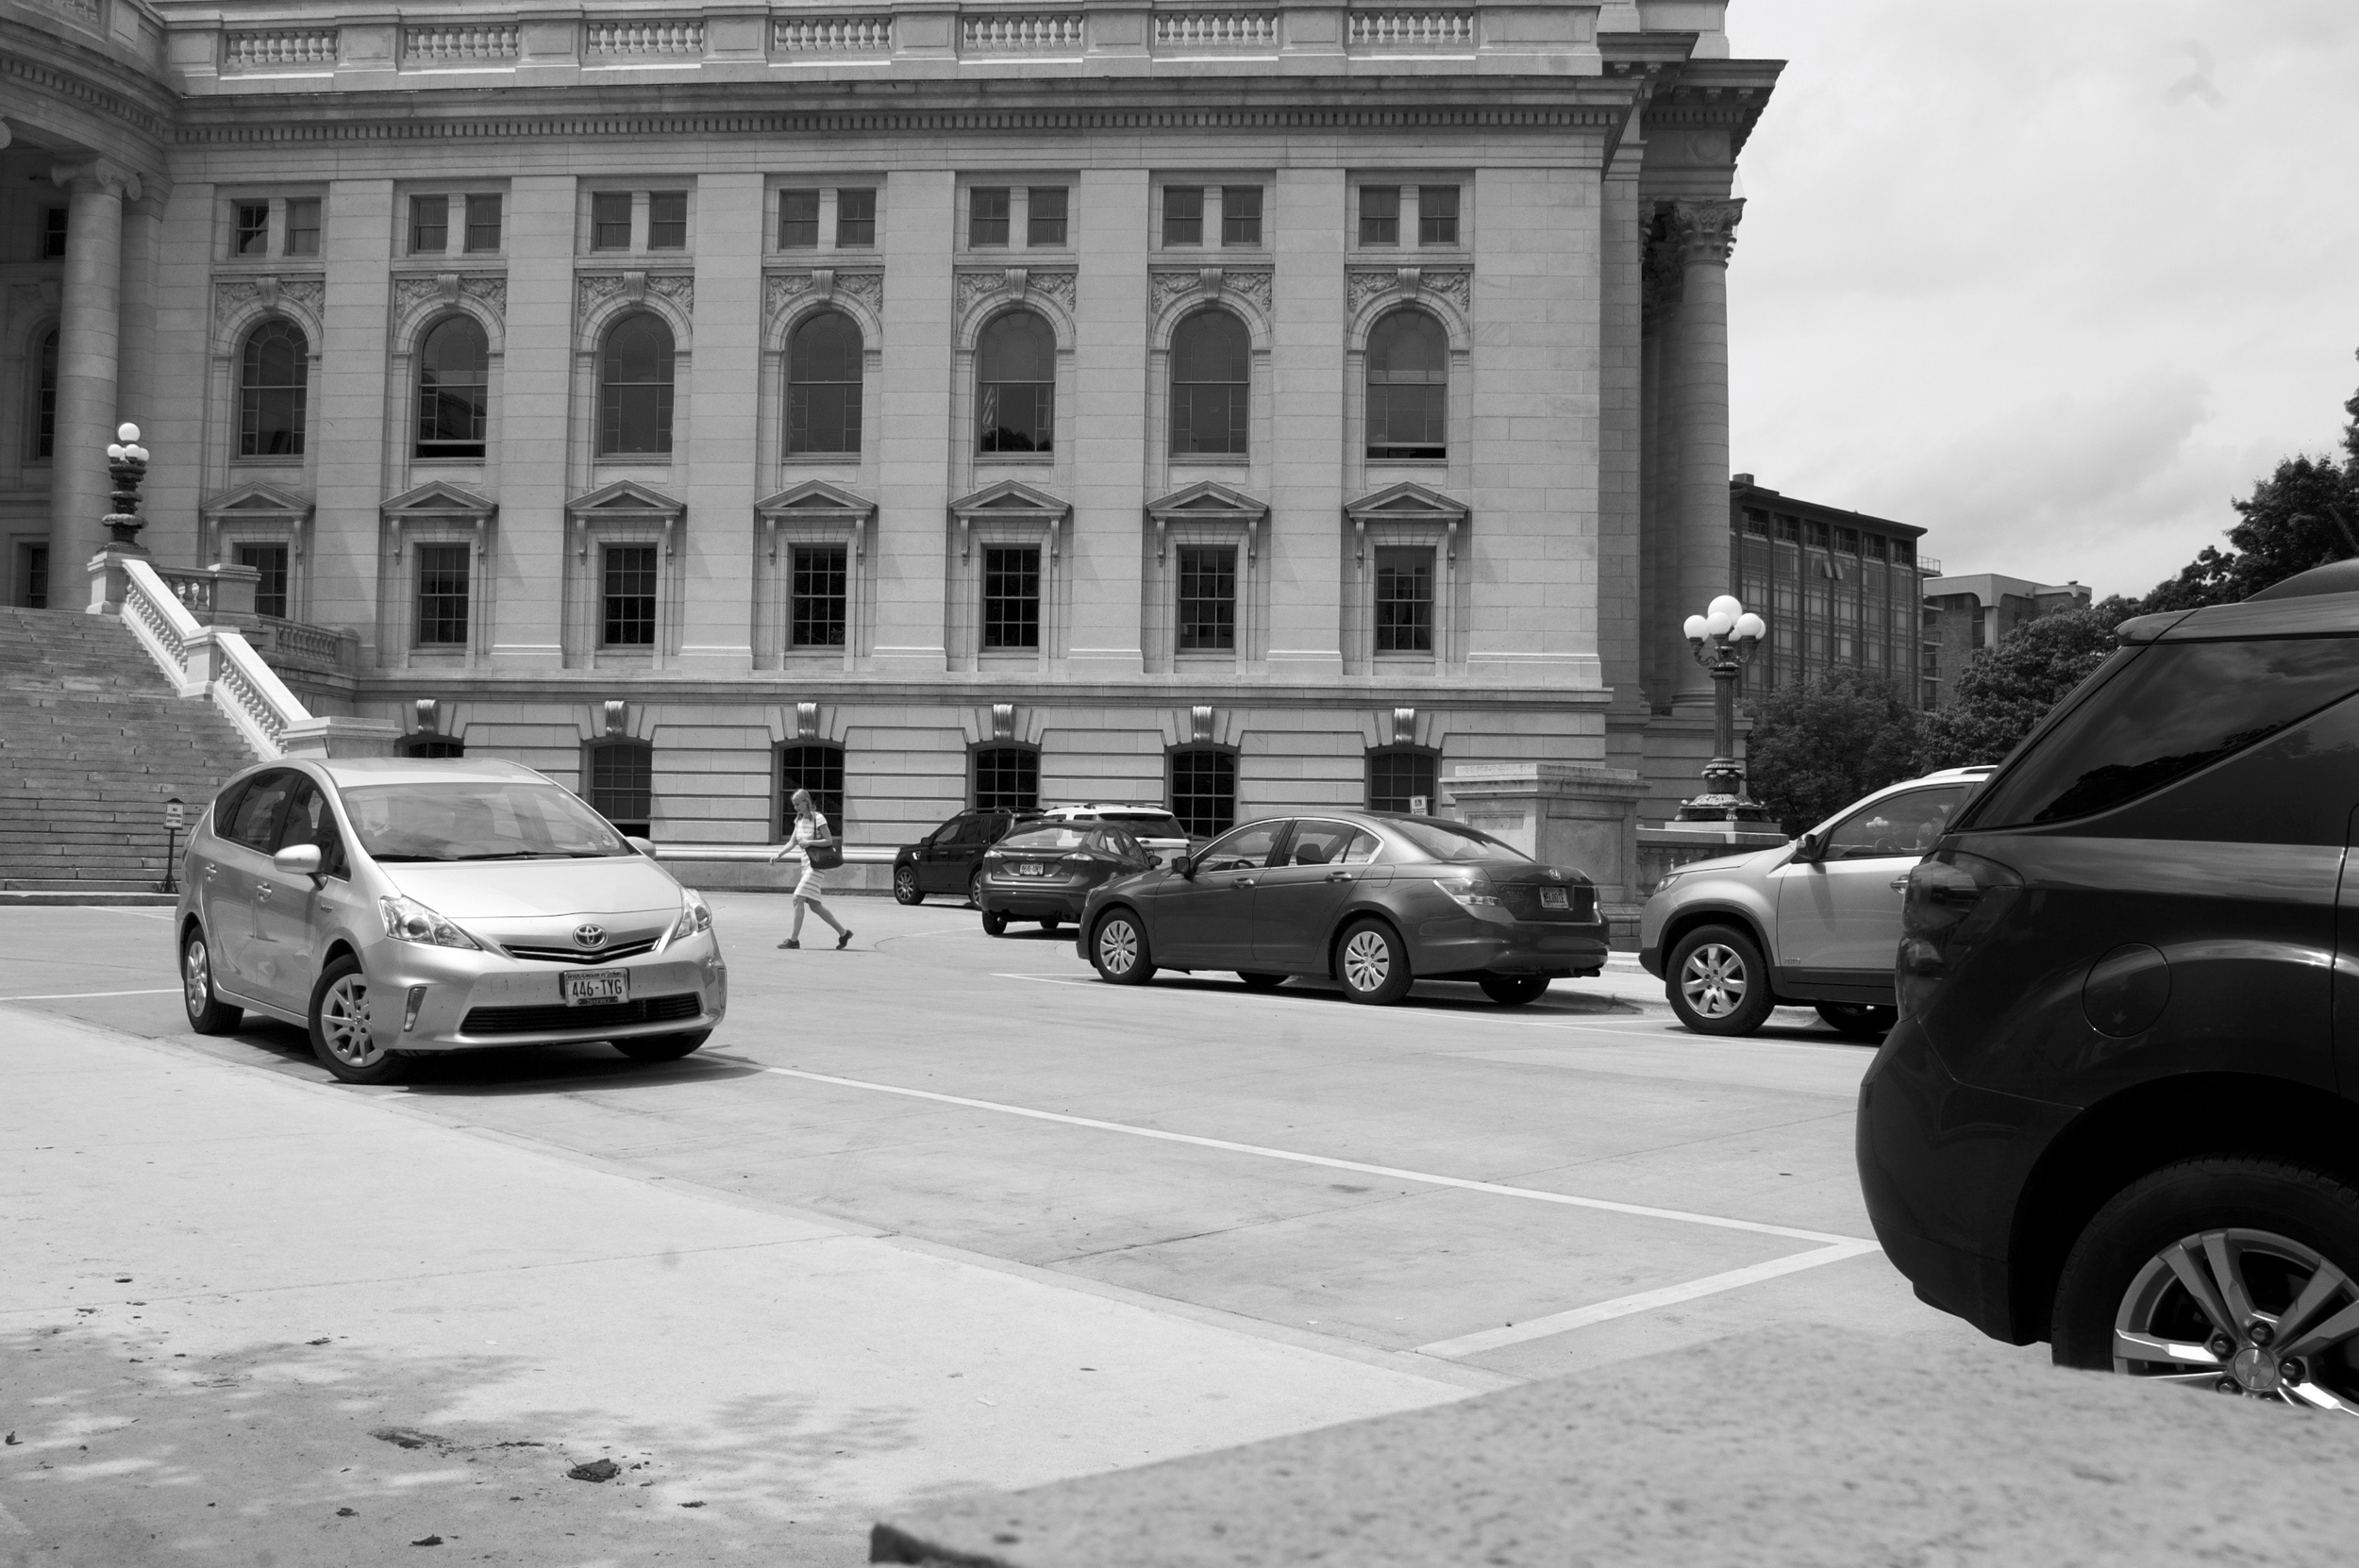 Cars. State Capitol. Madison, Wisconsin. May 2016. © William D. Walker